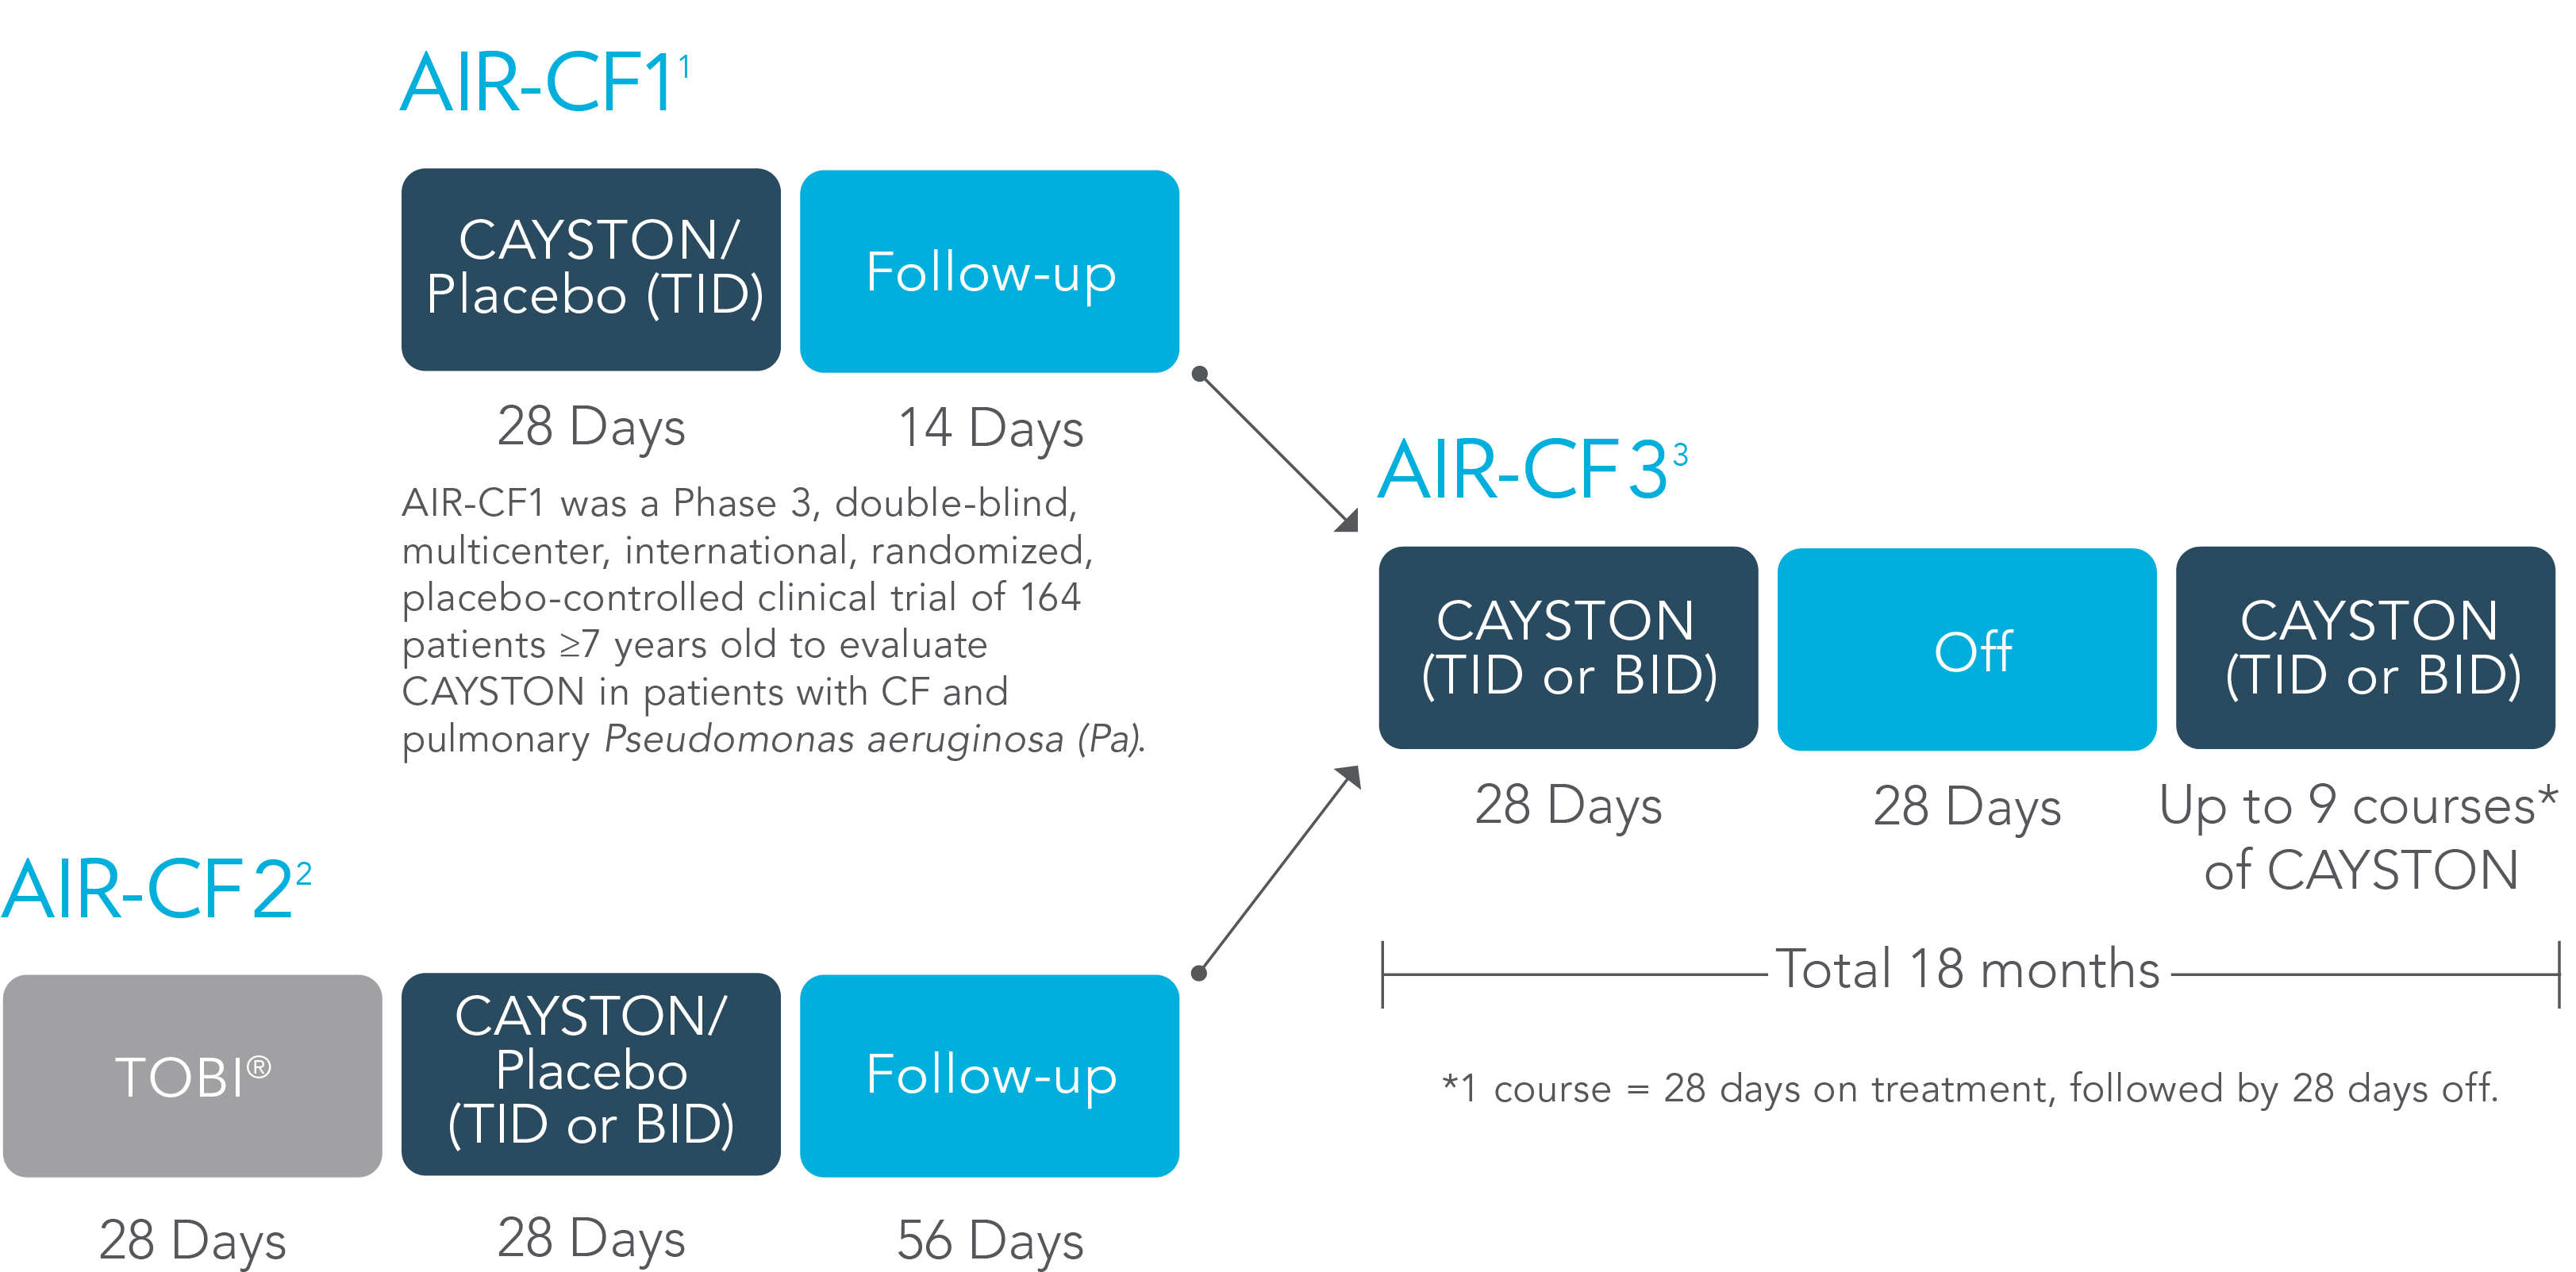 CAYSTON AIR-CF1 Study Design chart